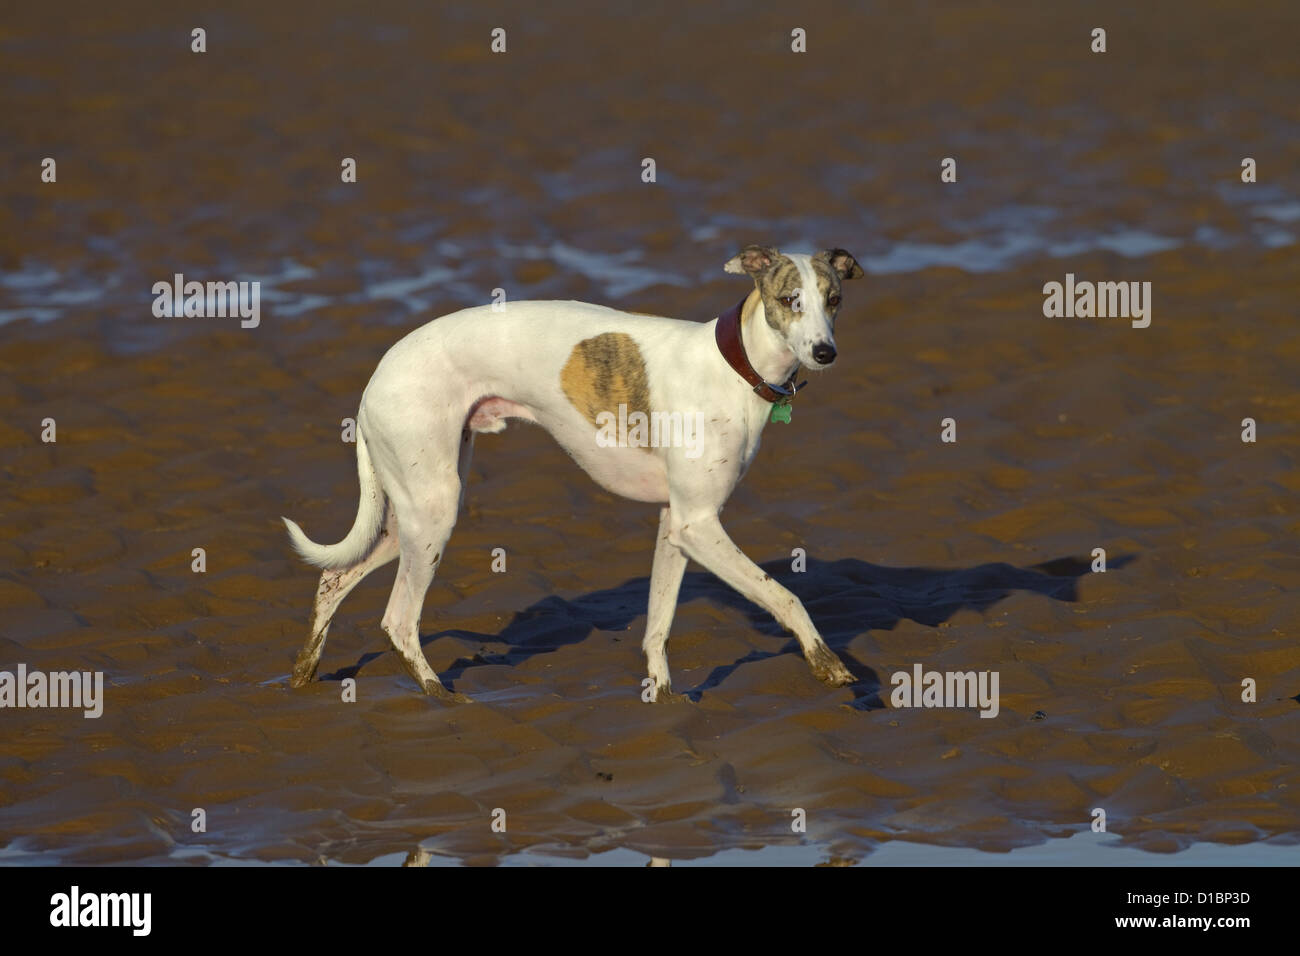 Whippet feeling cold - Stock Image